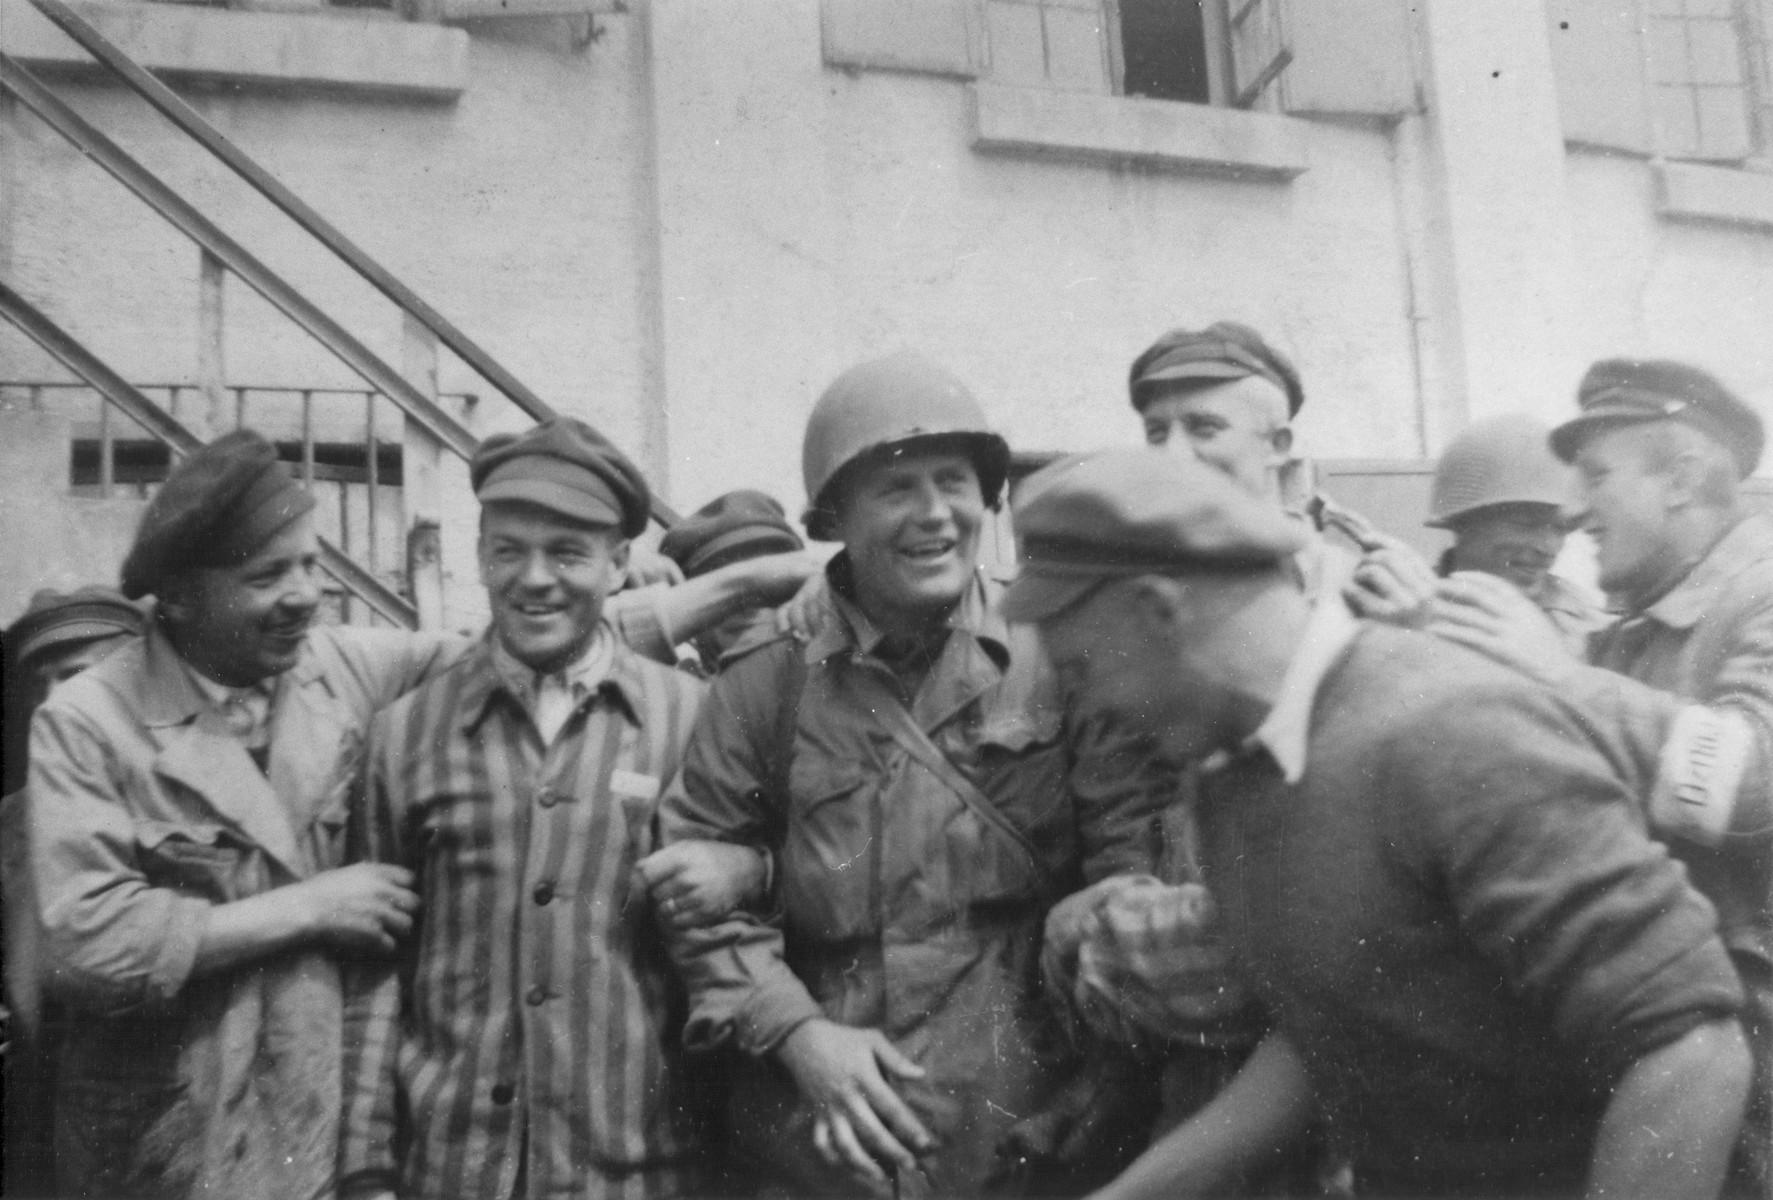 An American officer is surrounded by survivors at the newly liberated Dachau concentration camp.